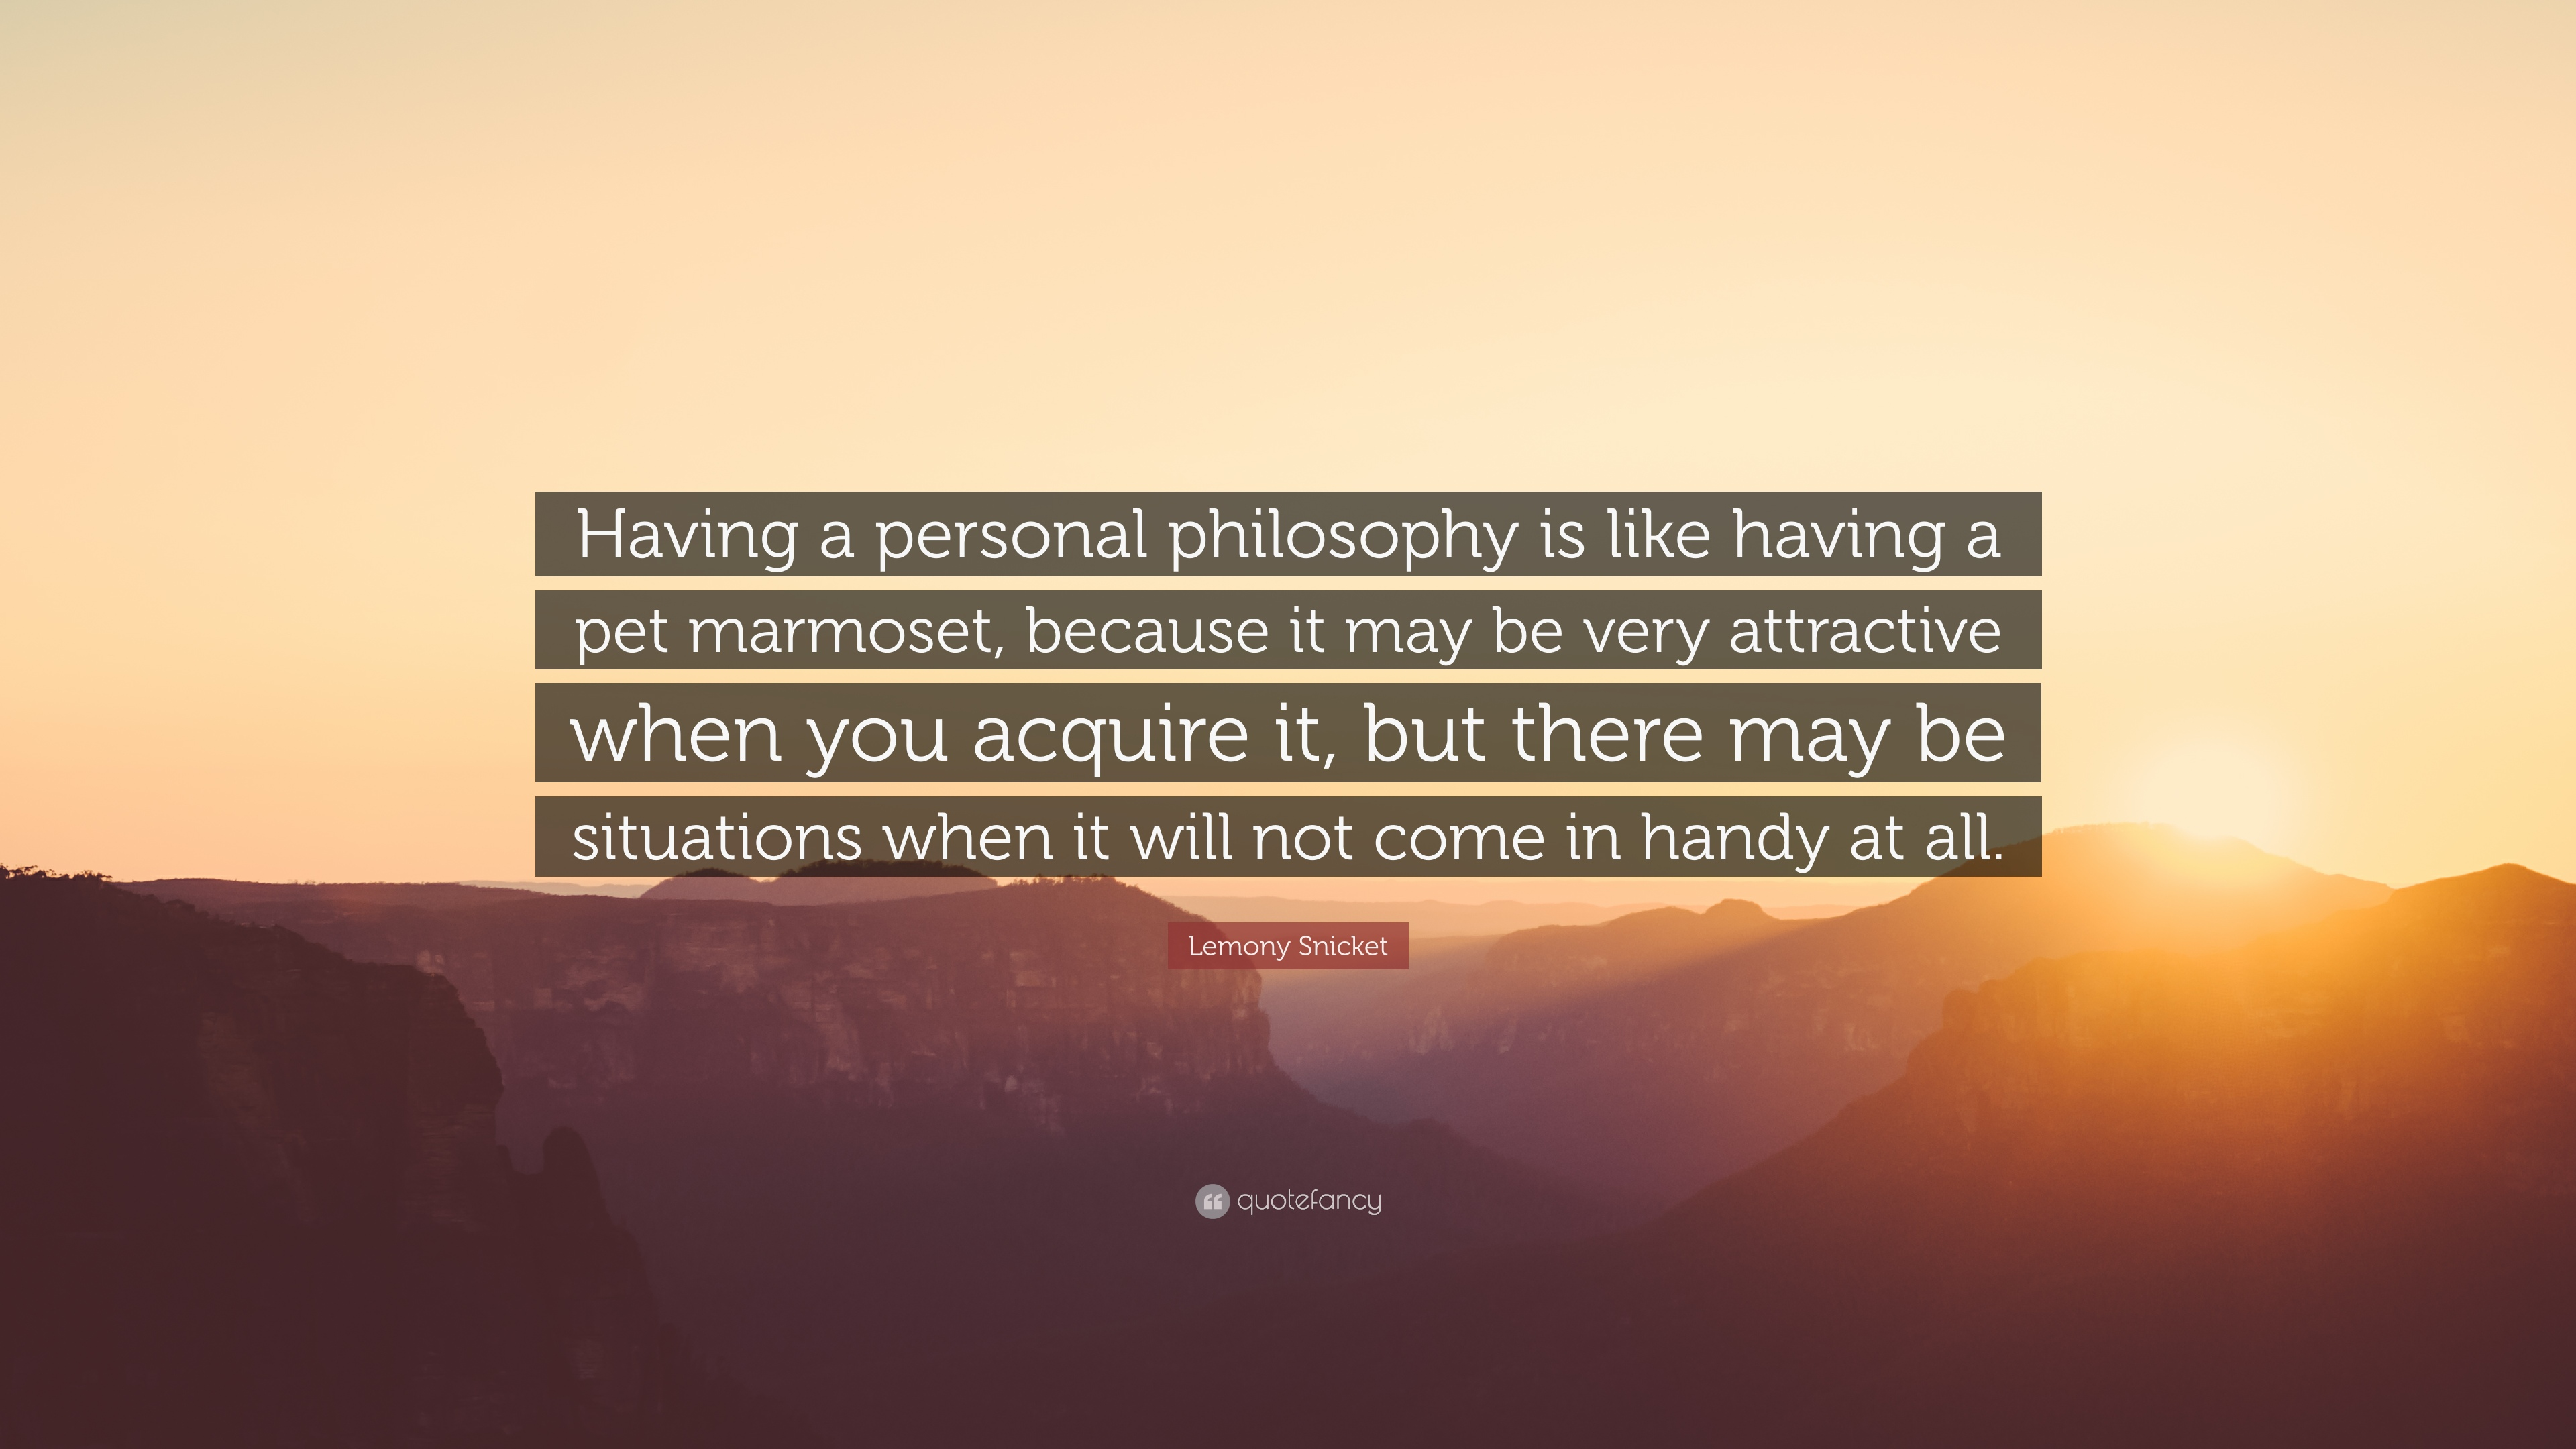 Tate thompson